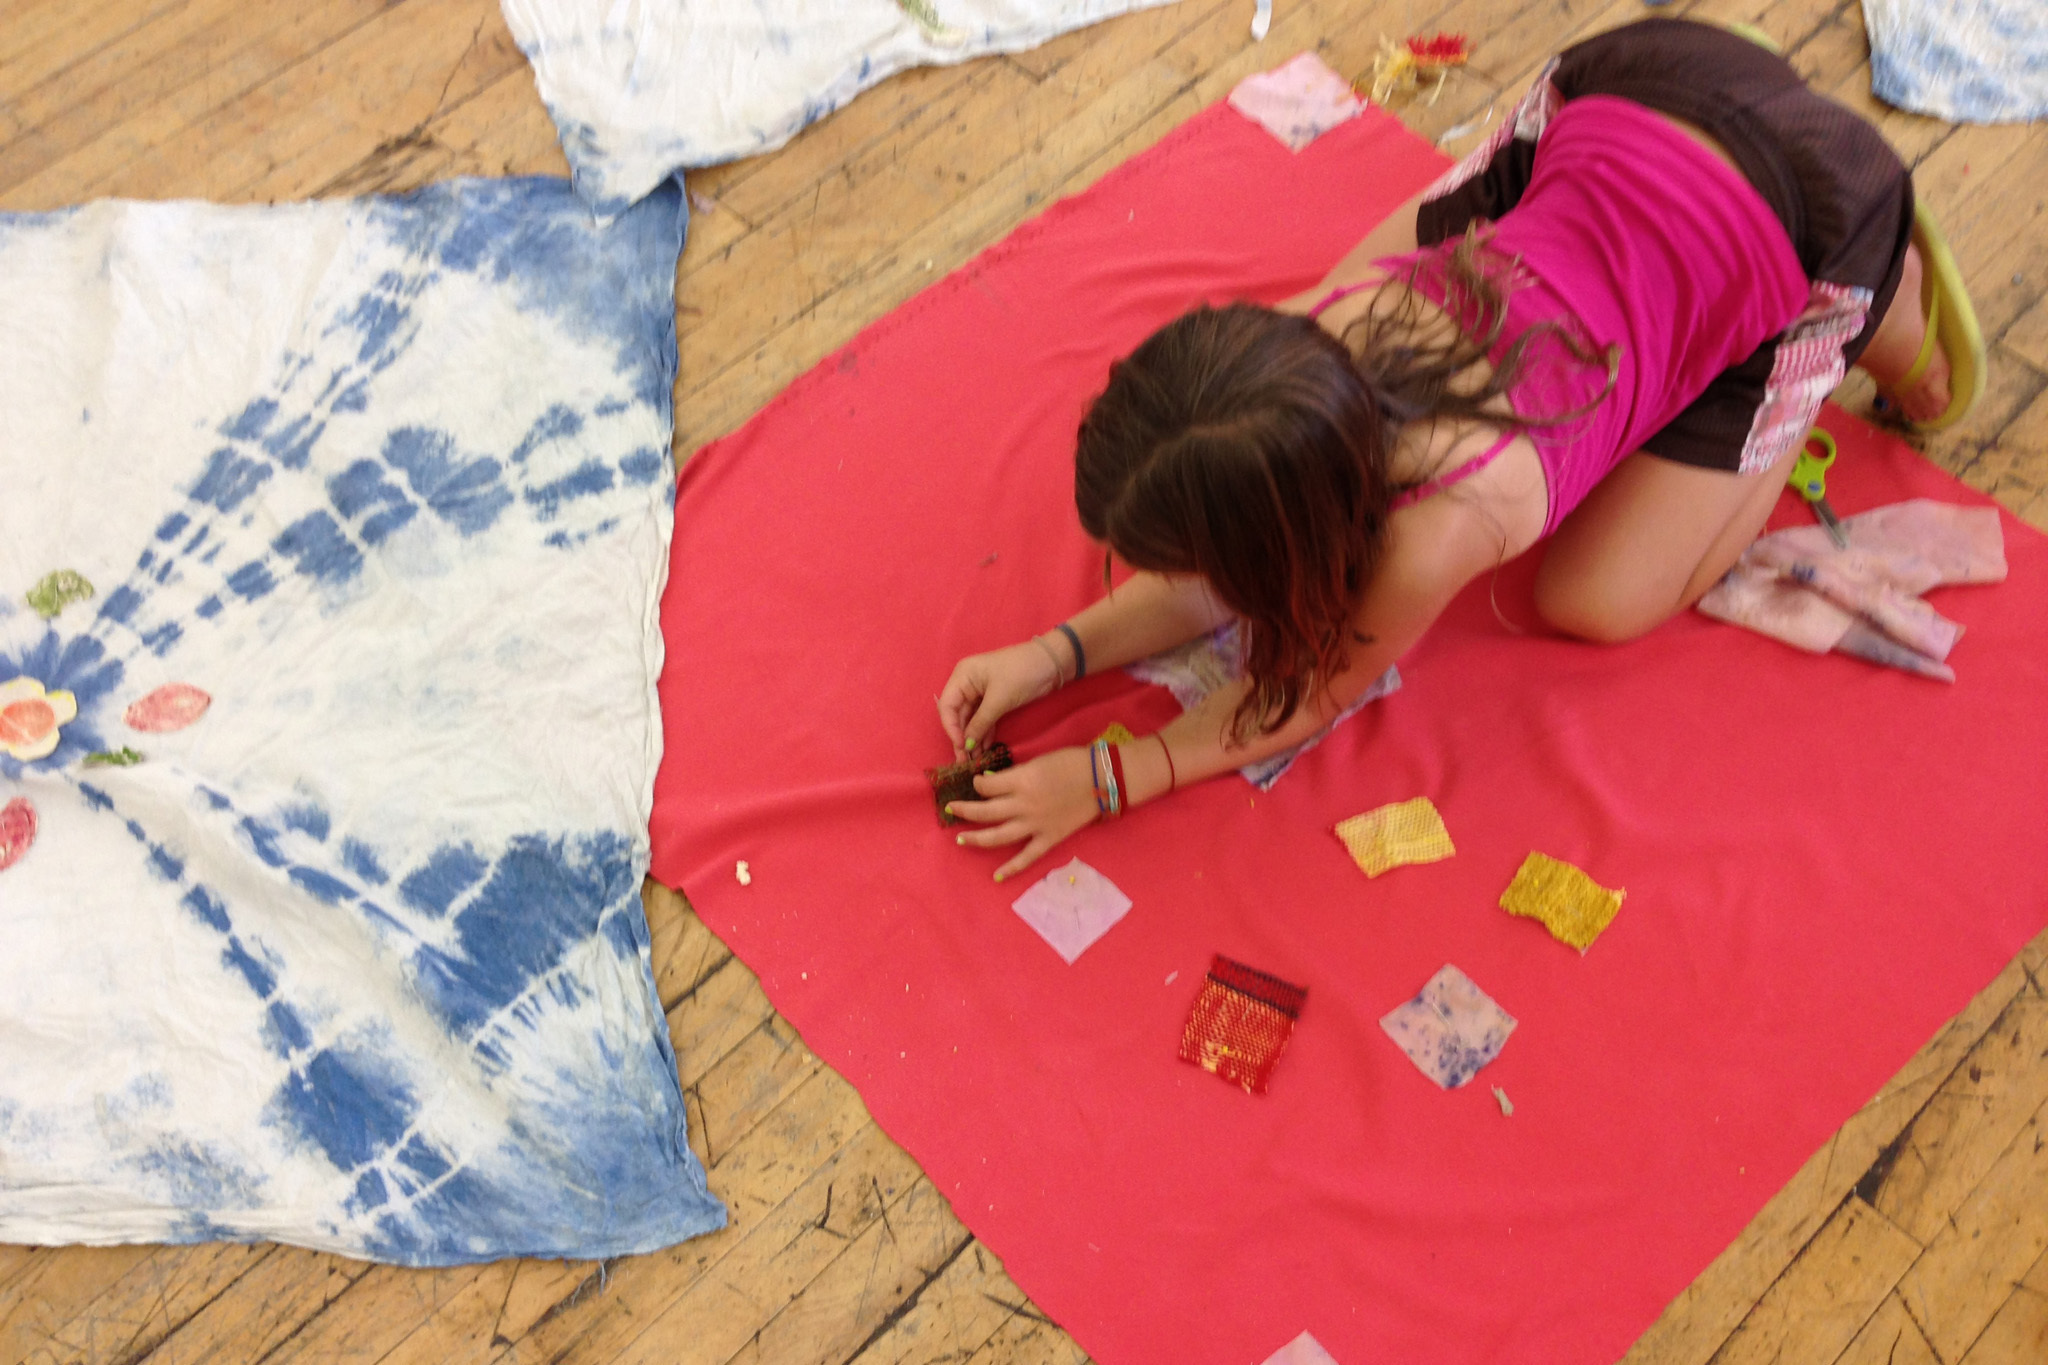 11 awesome open houses in fall 2013 for kids in NYC